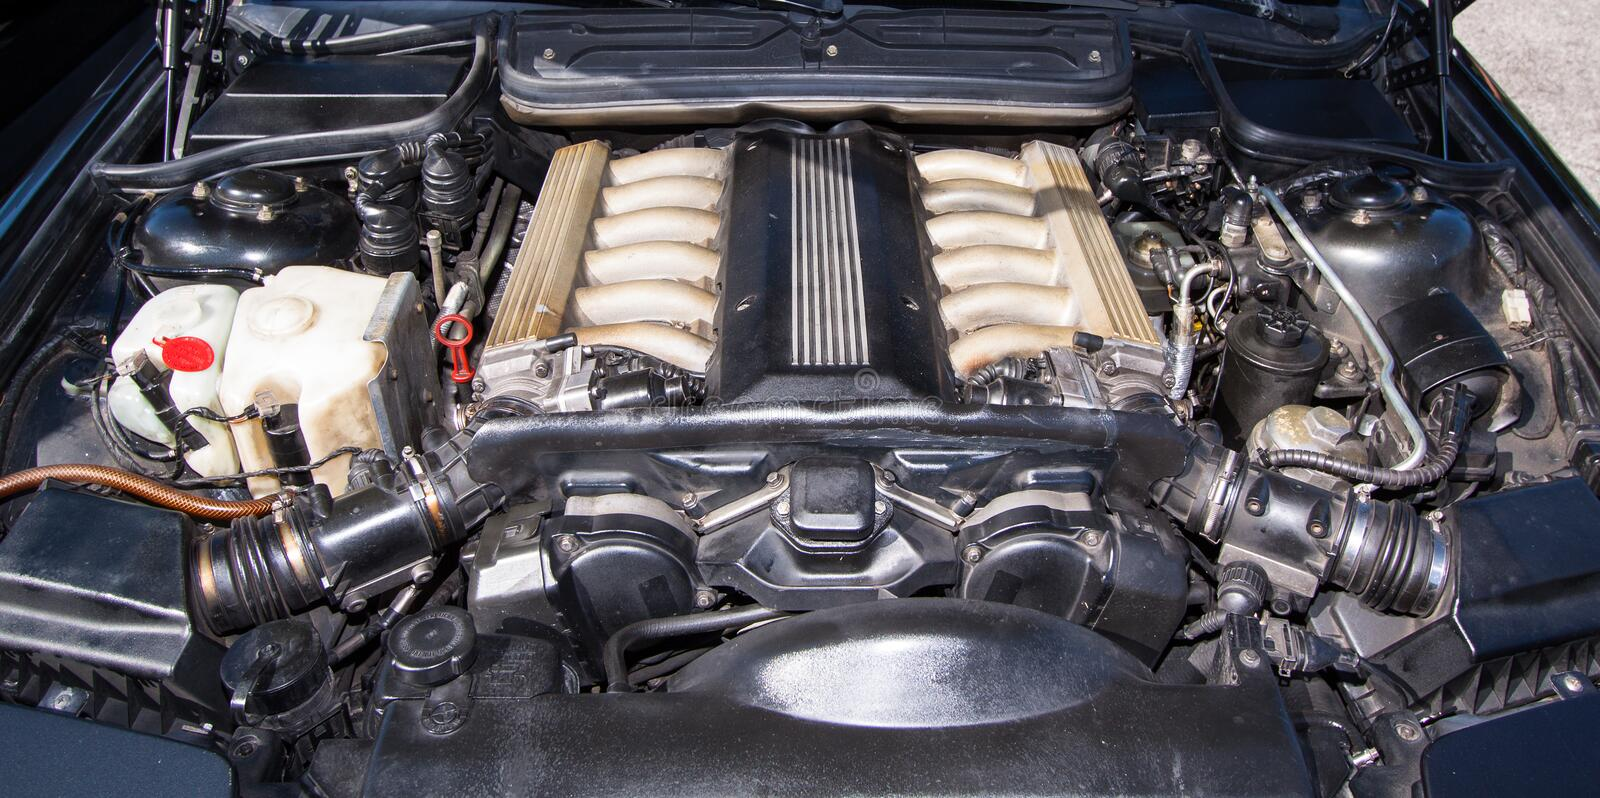 Bmw 850 engine. Engine of BMW 850 csi - into open bonnet you can see details of big V12 engine stock photo